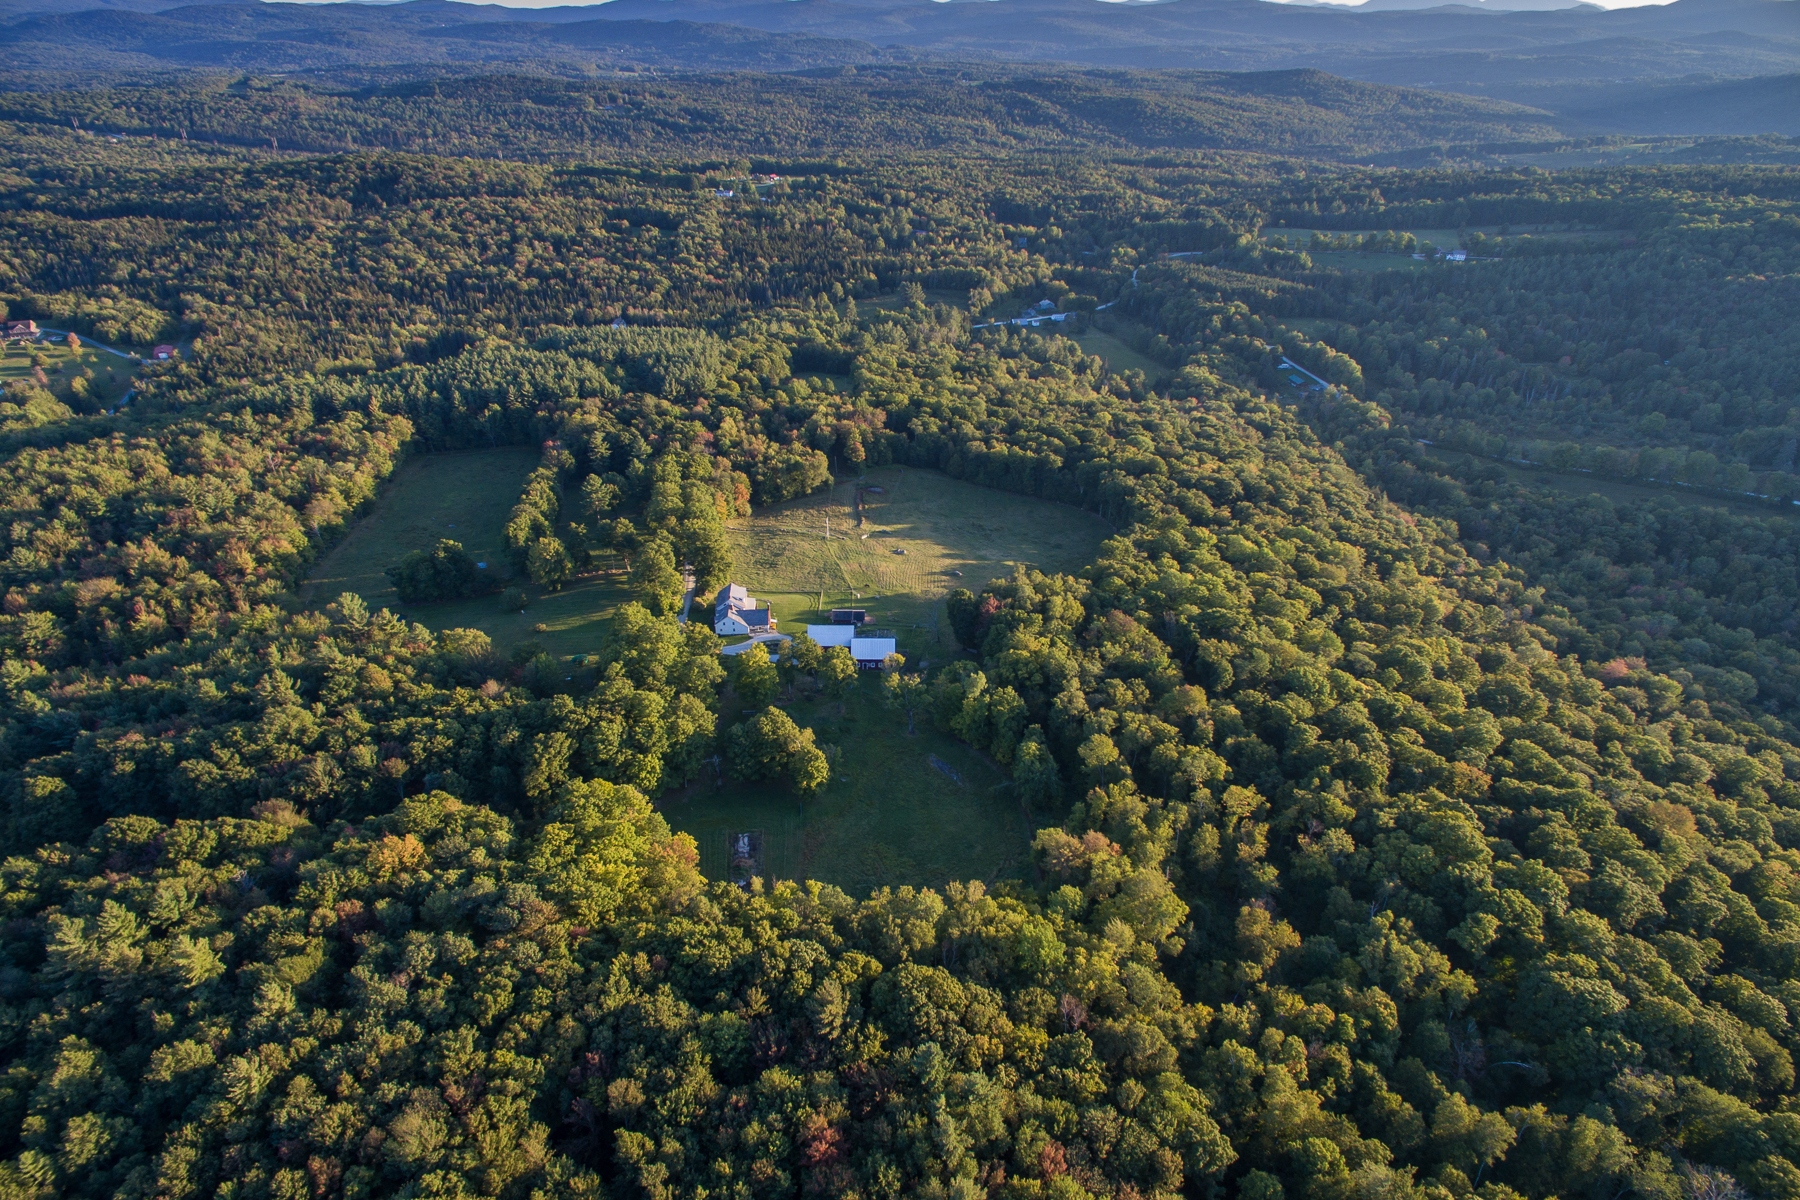 Terreno por un Venta en Wildlife abounds and privacy is assured... Old Farm Rd Shrewsbury, Vermont, 05738 Estados Unidos